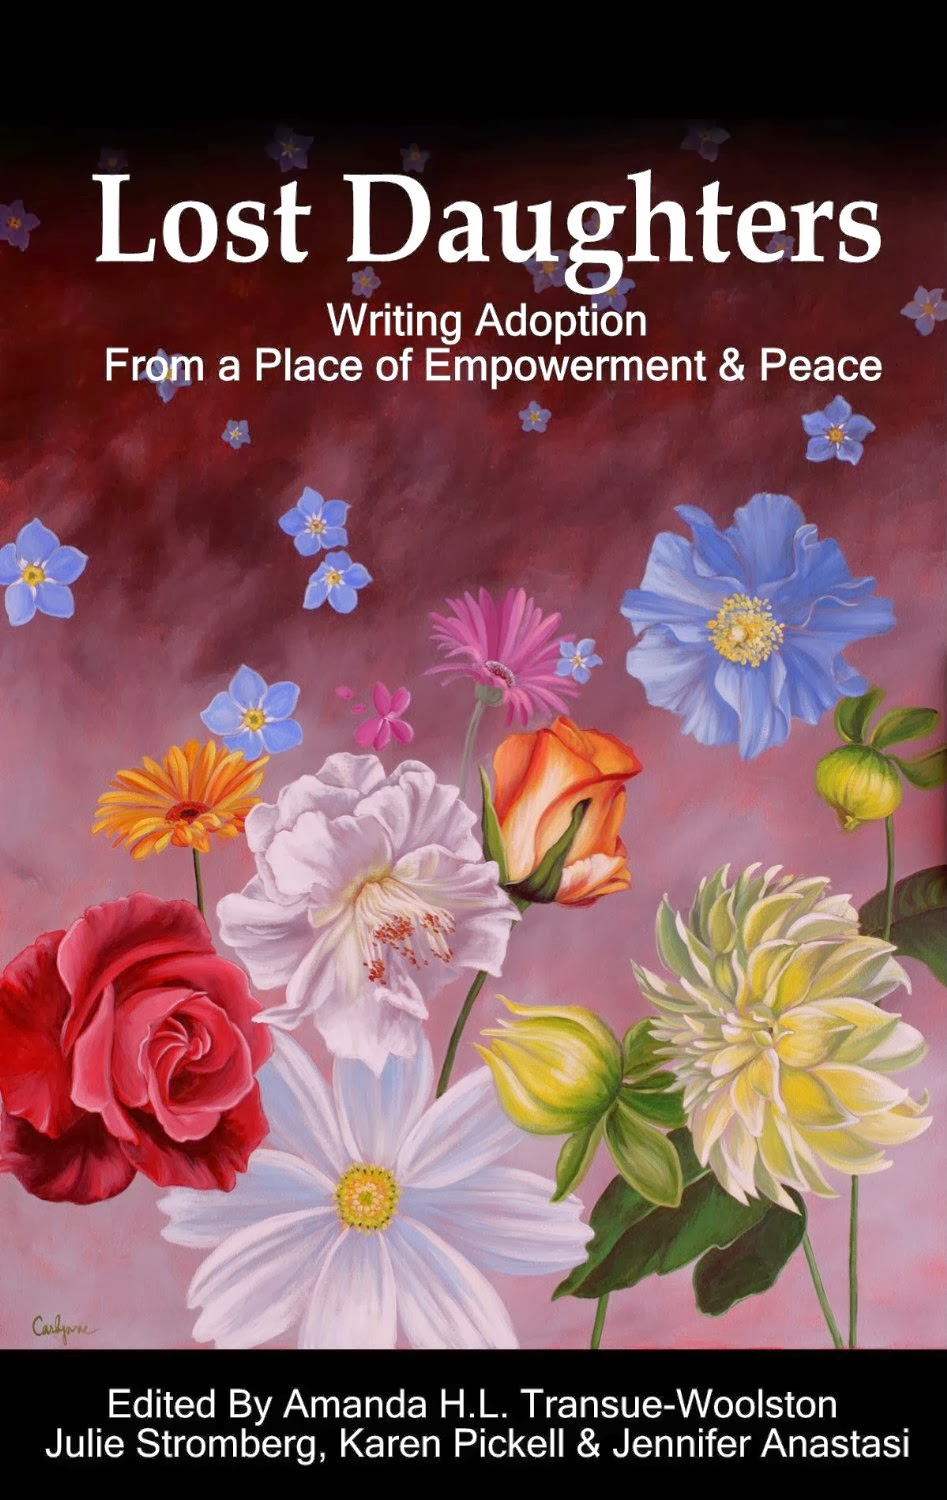 Writing a childrens book about adoption